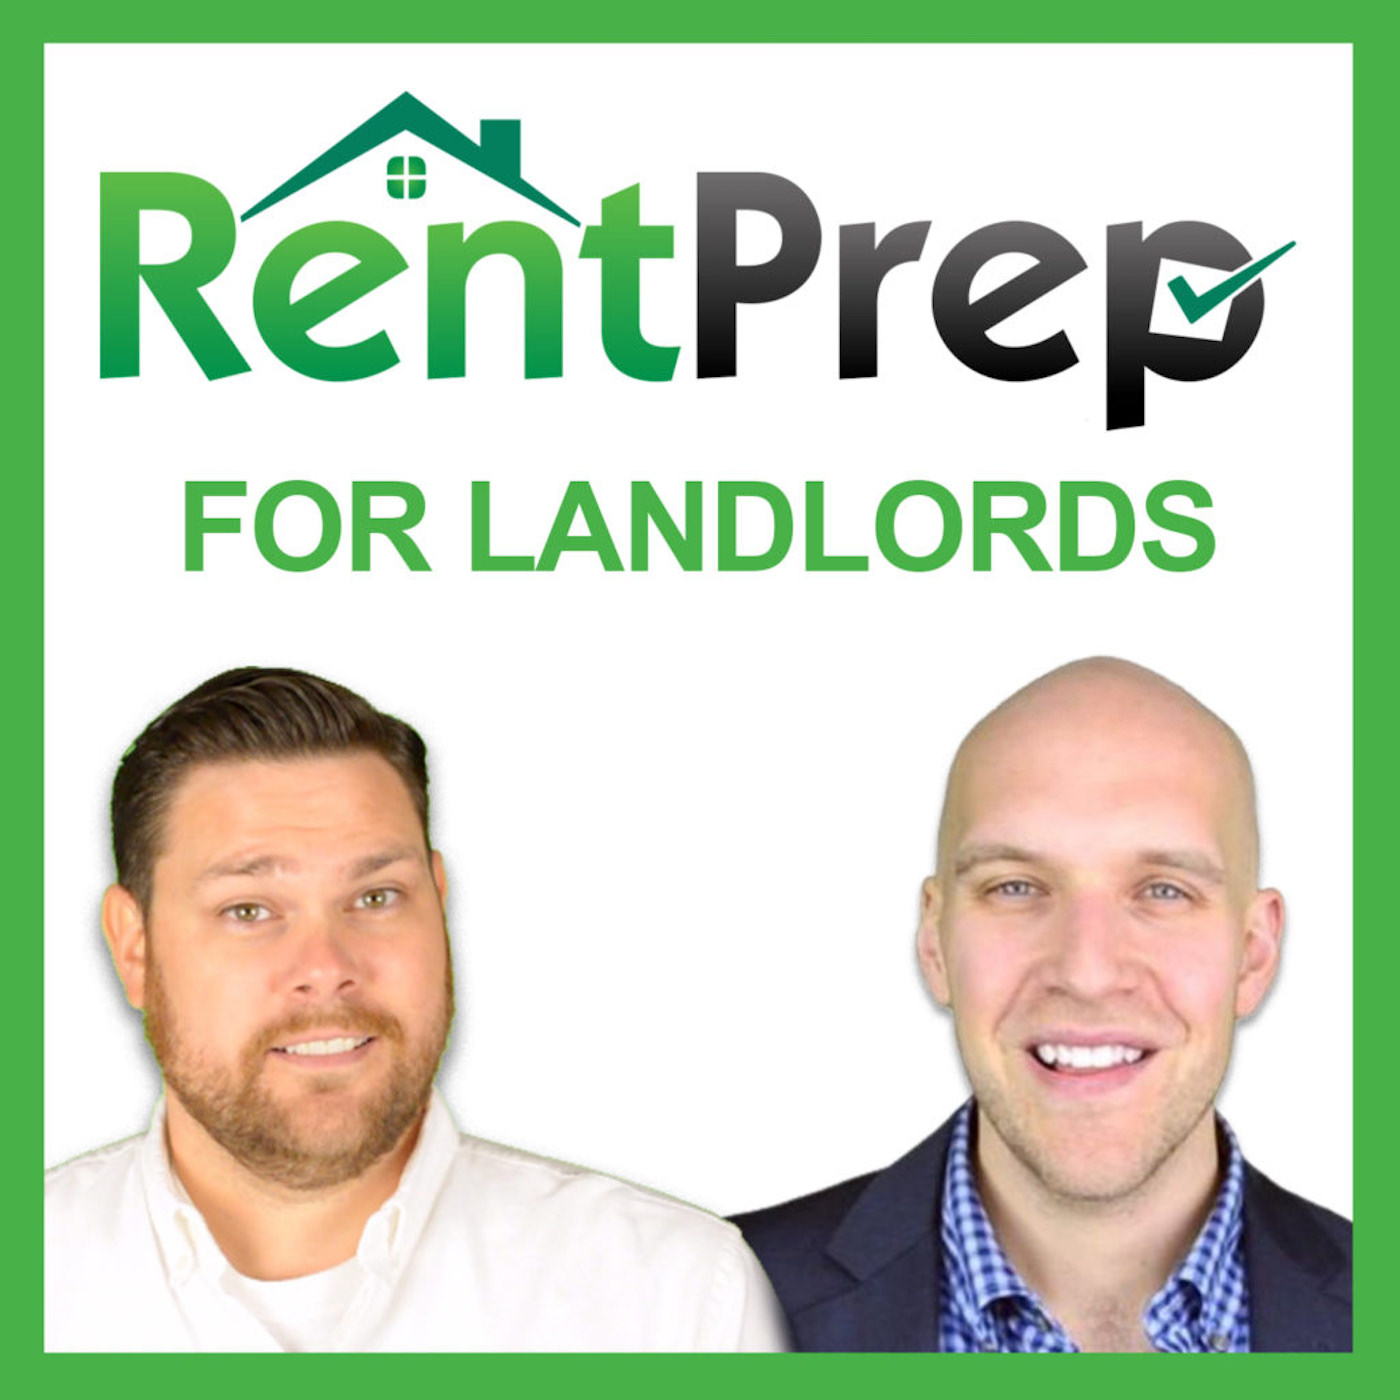 RentPrep For Landlords